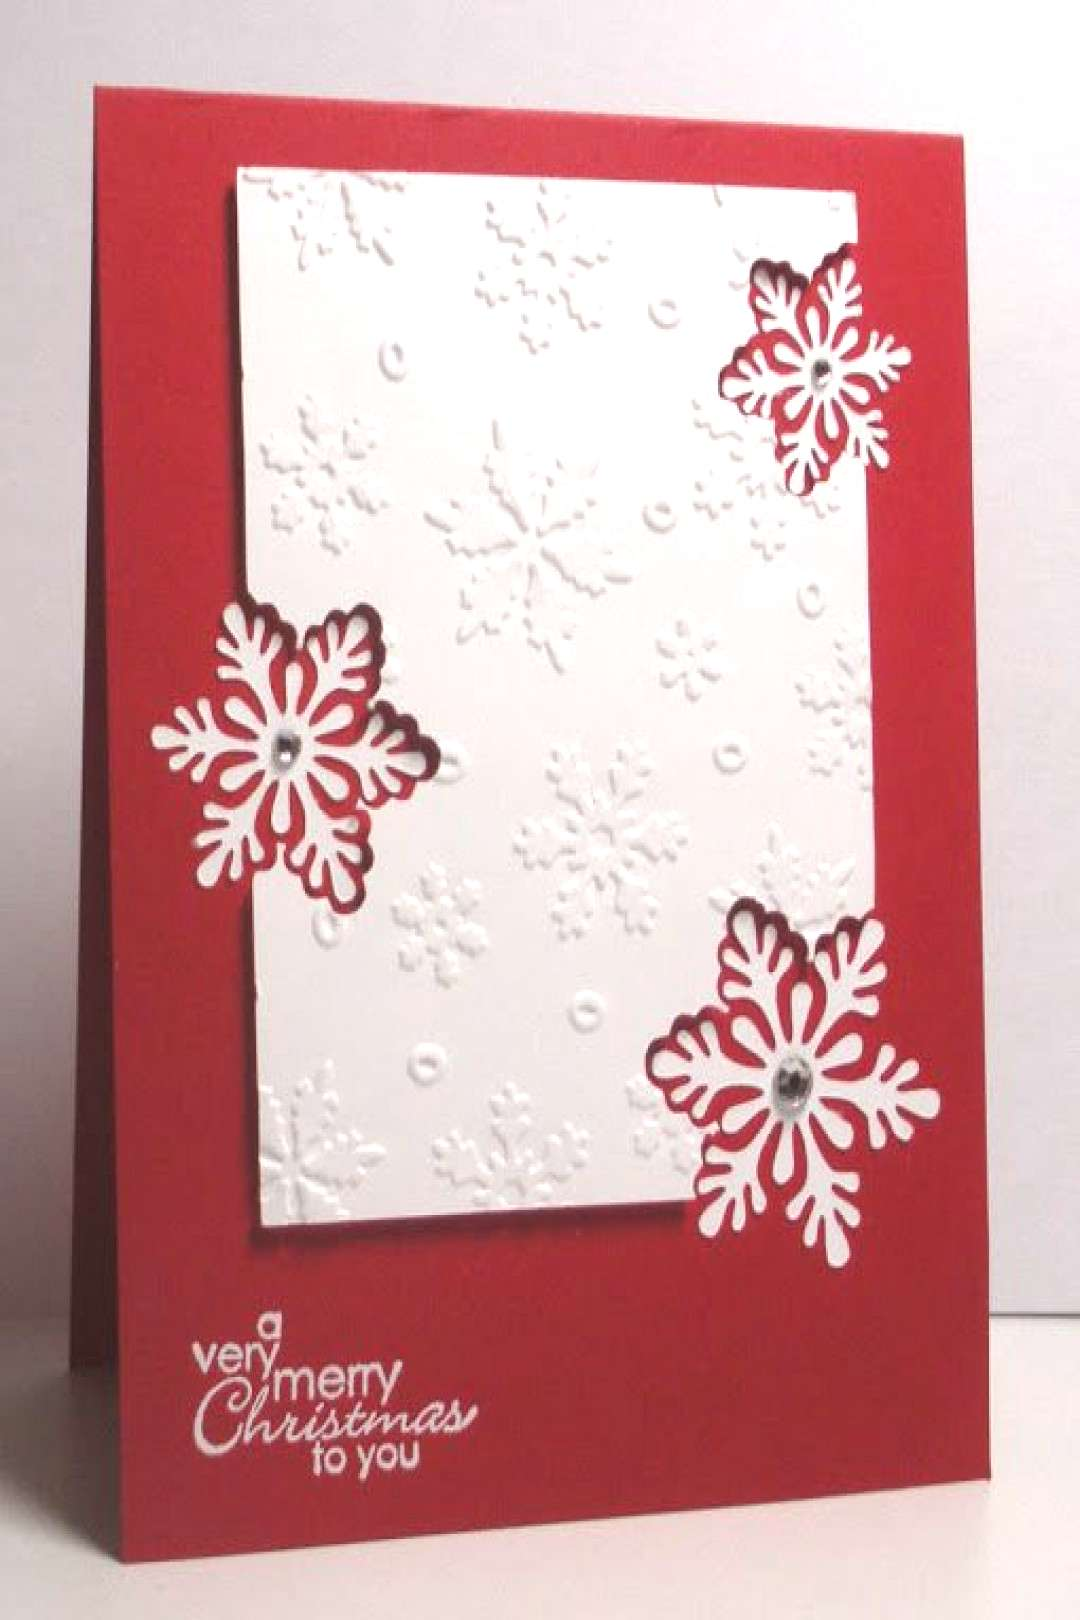 handmade Christmas card from Think Outside the Box: Snowy Christmas Greetings ... panel with emboss